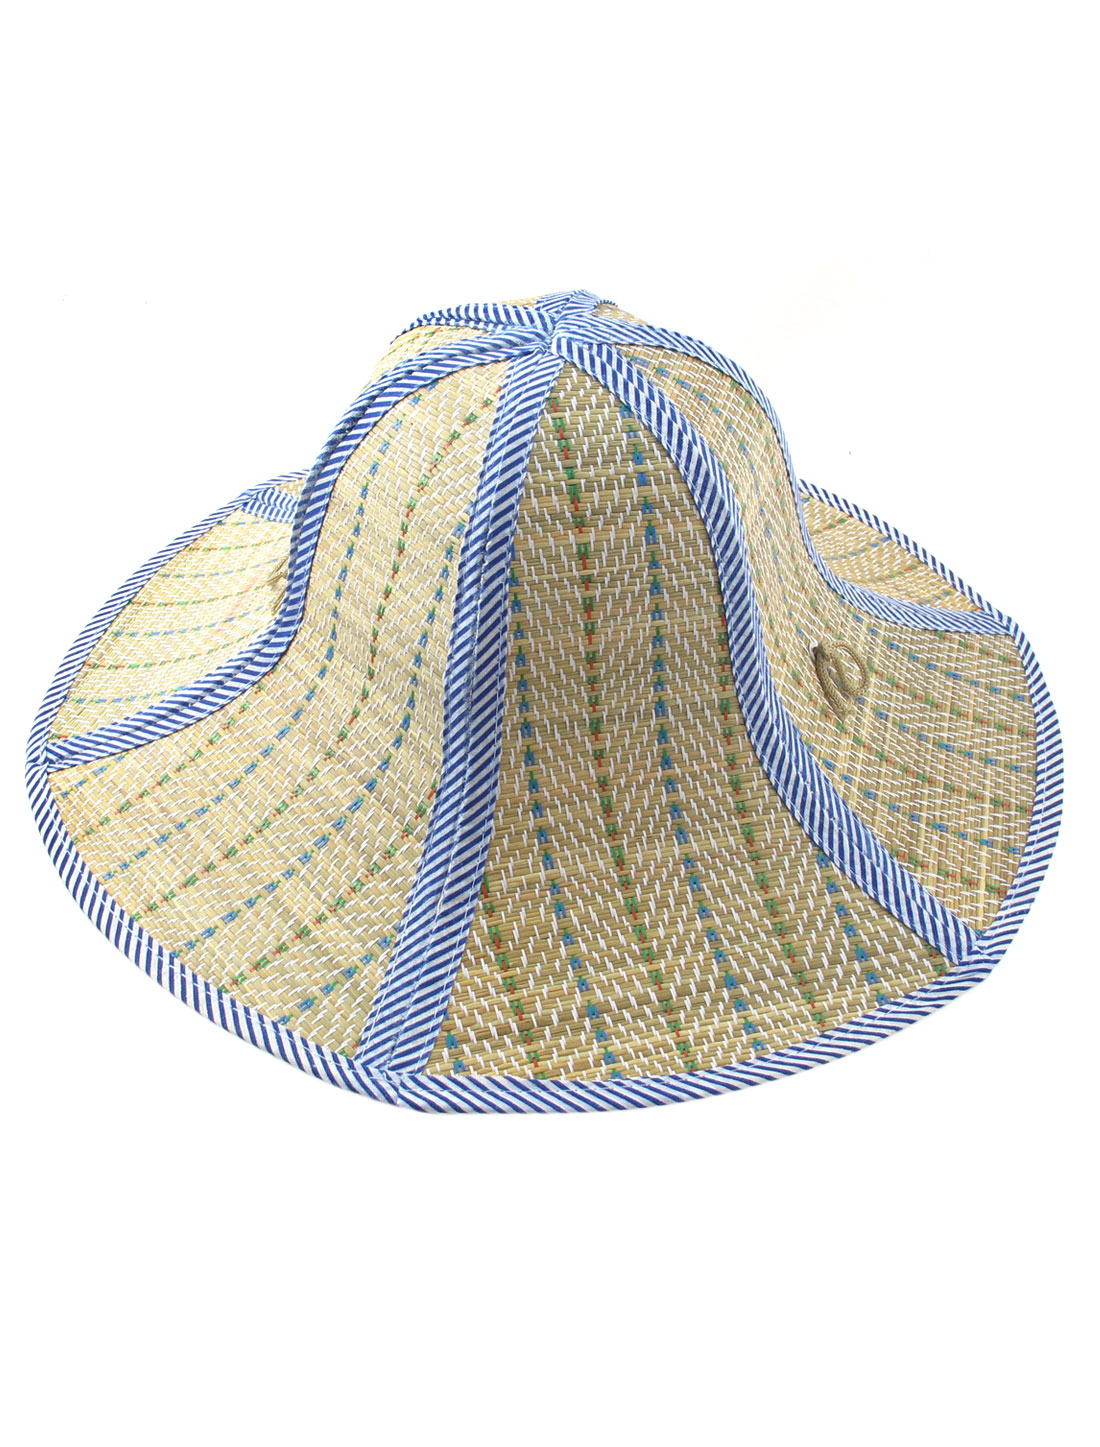 Unisex Foldable Chin Strap Summer Beach Boater Straw Hat Cap Brown Blue